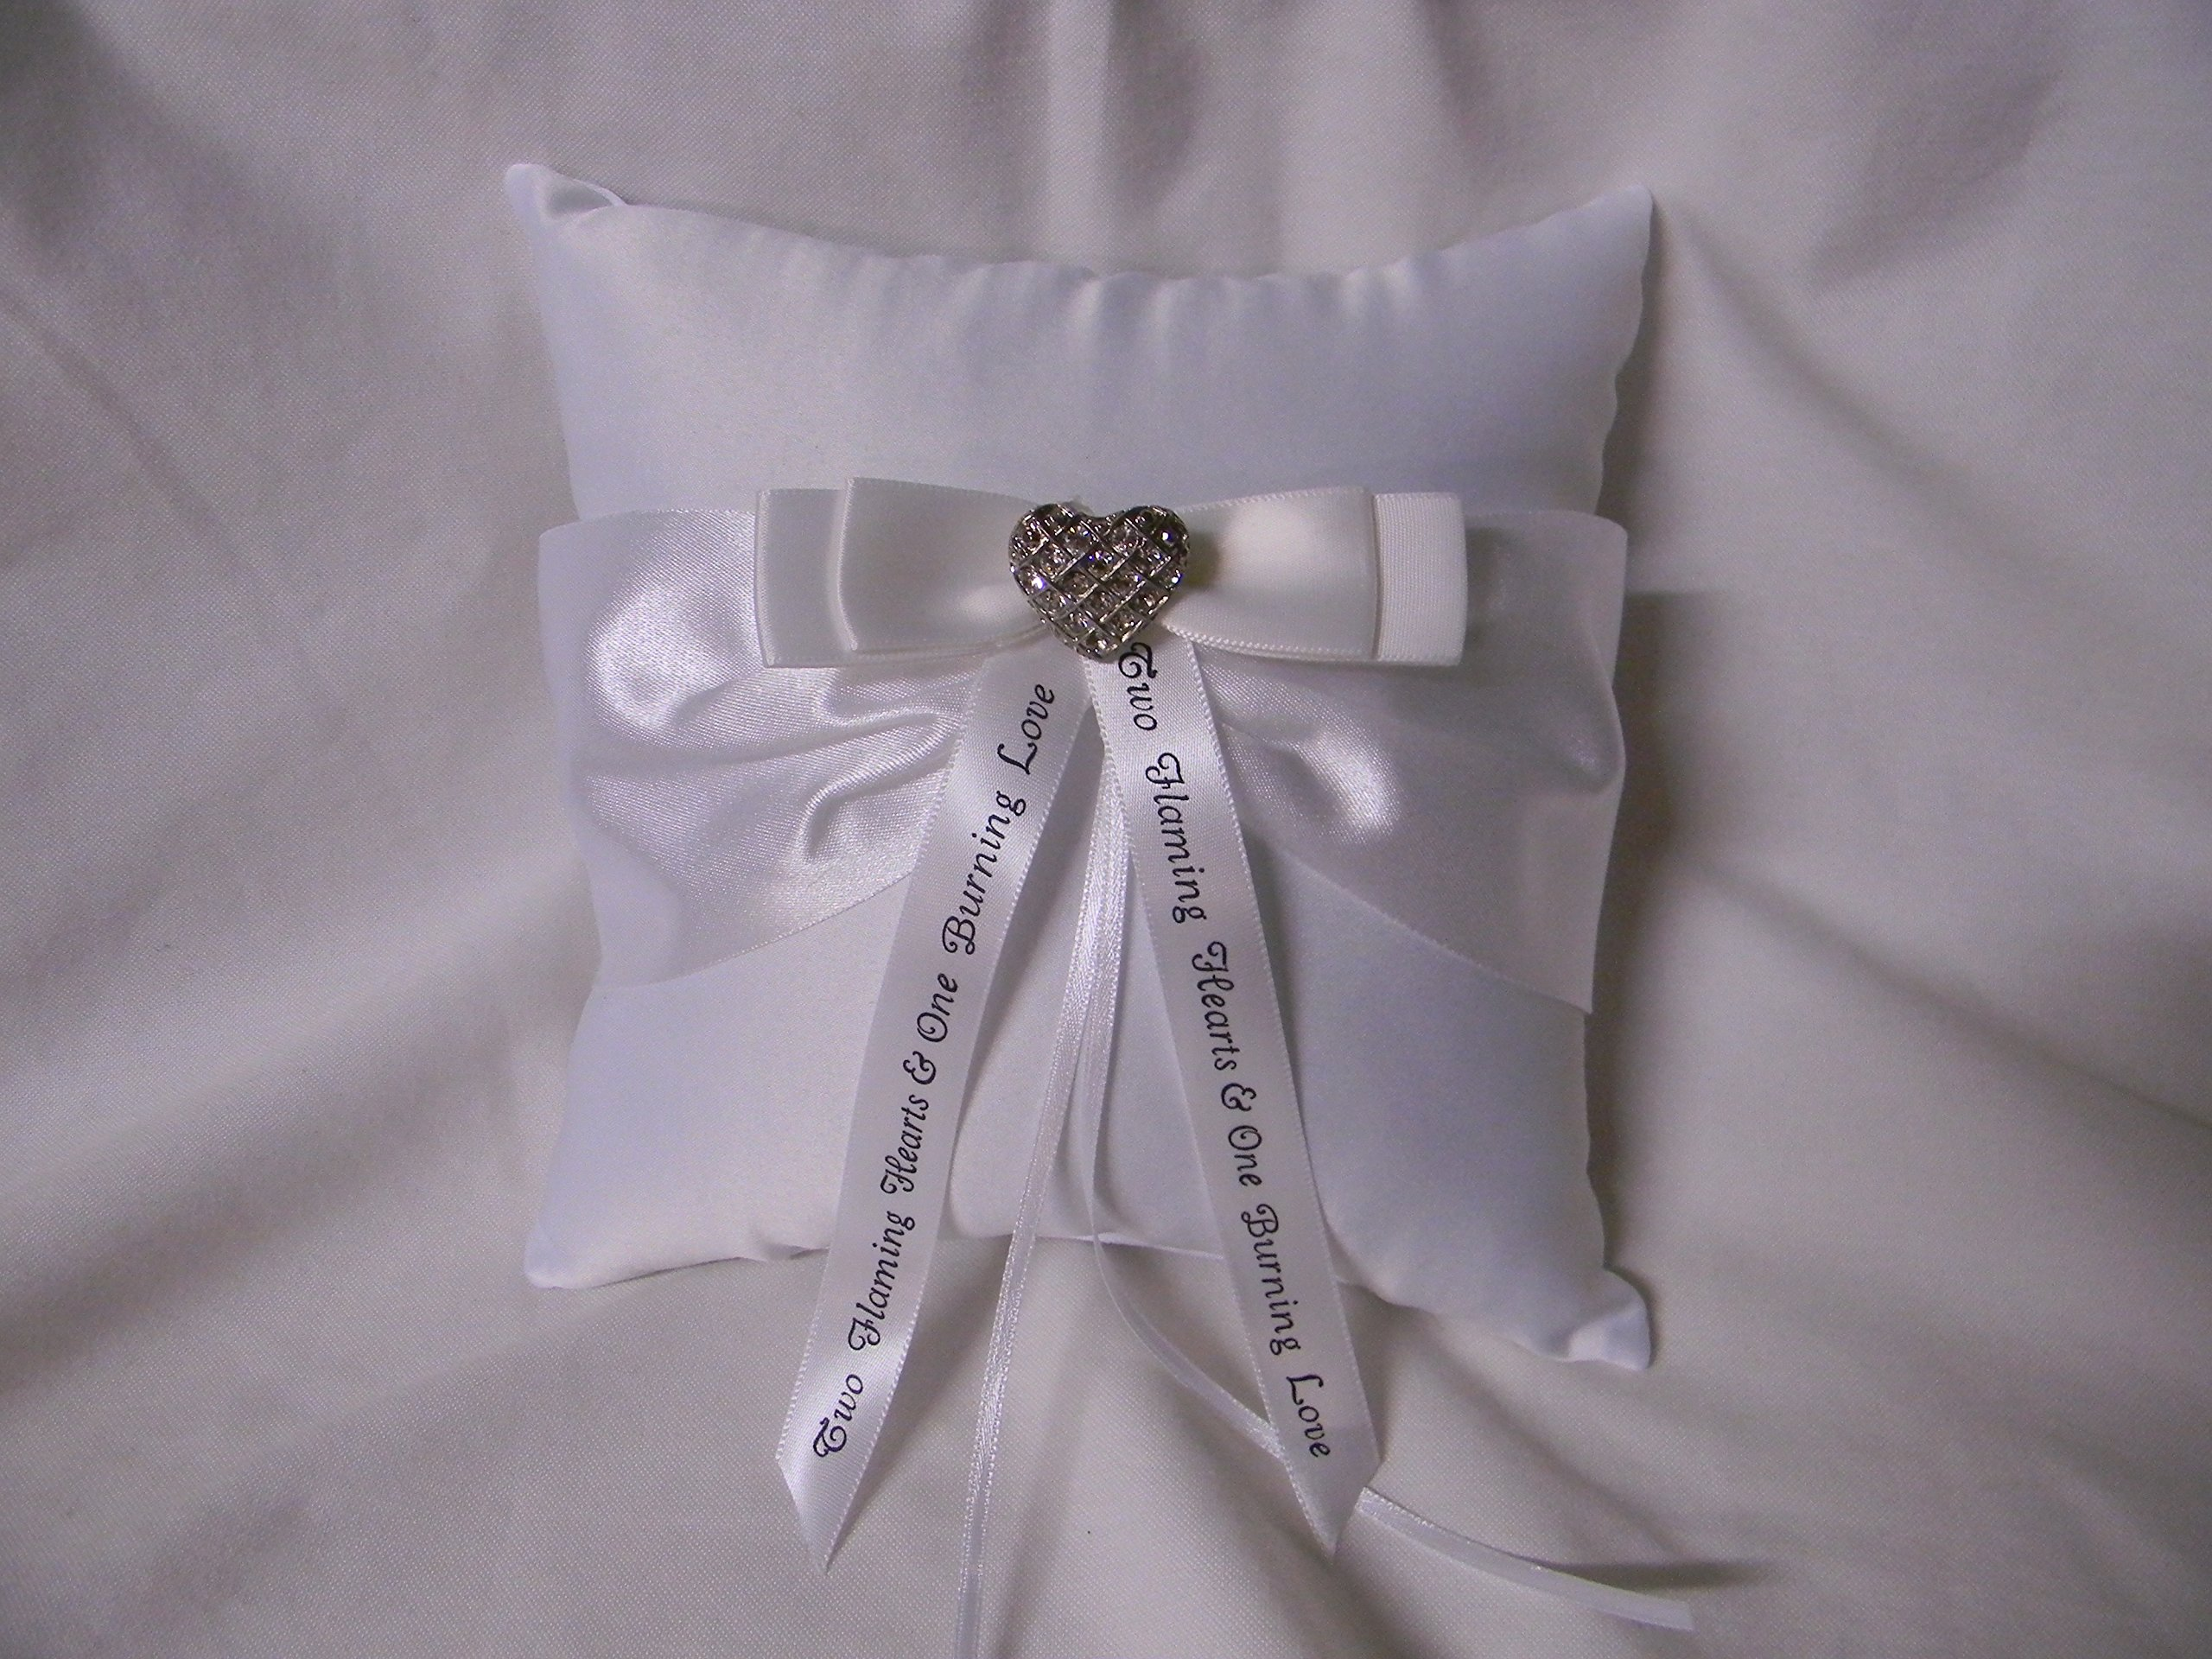 Wedding ceremony Party Ring bearer Pillow Rhinestone Heart with Message Ribbon by Custom Design Wedding Supplies by Suzanne